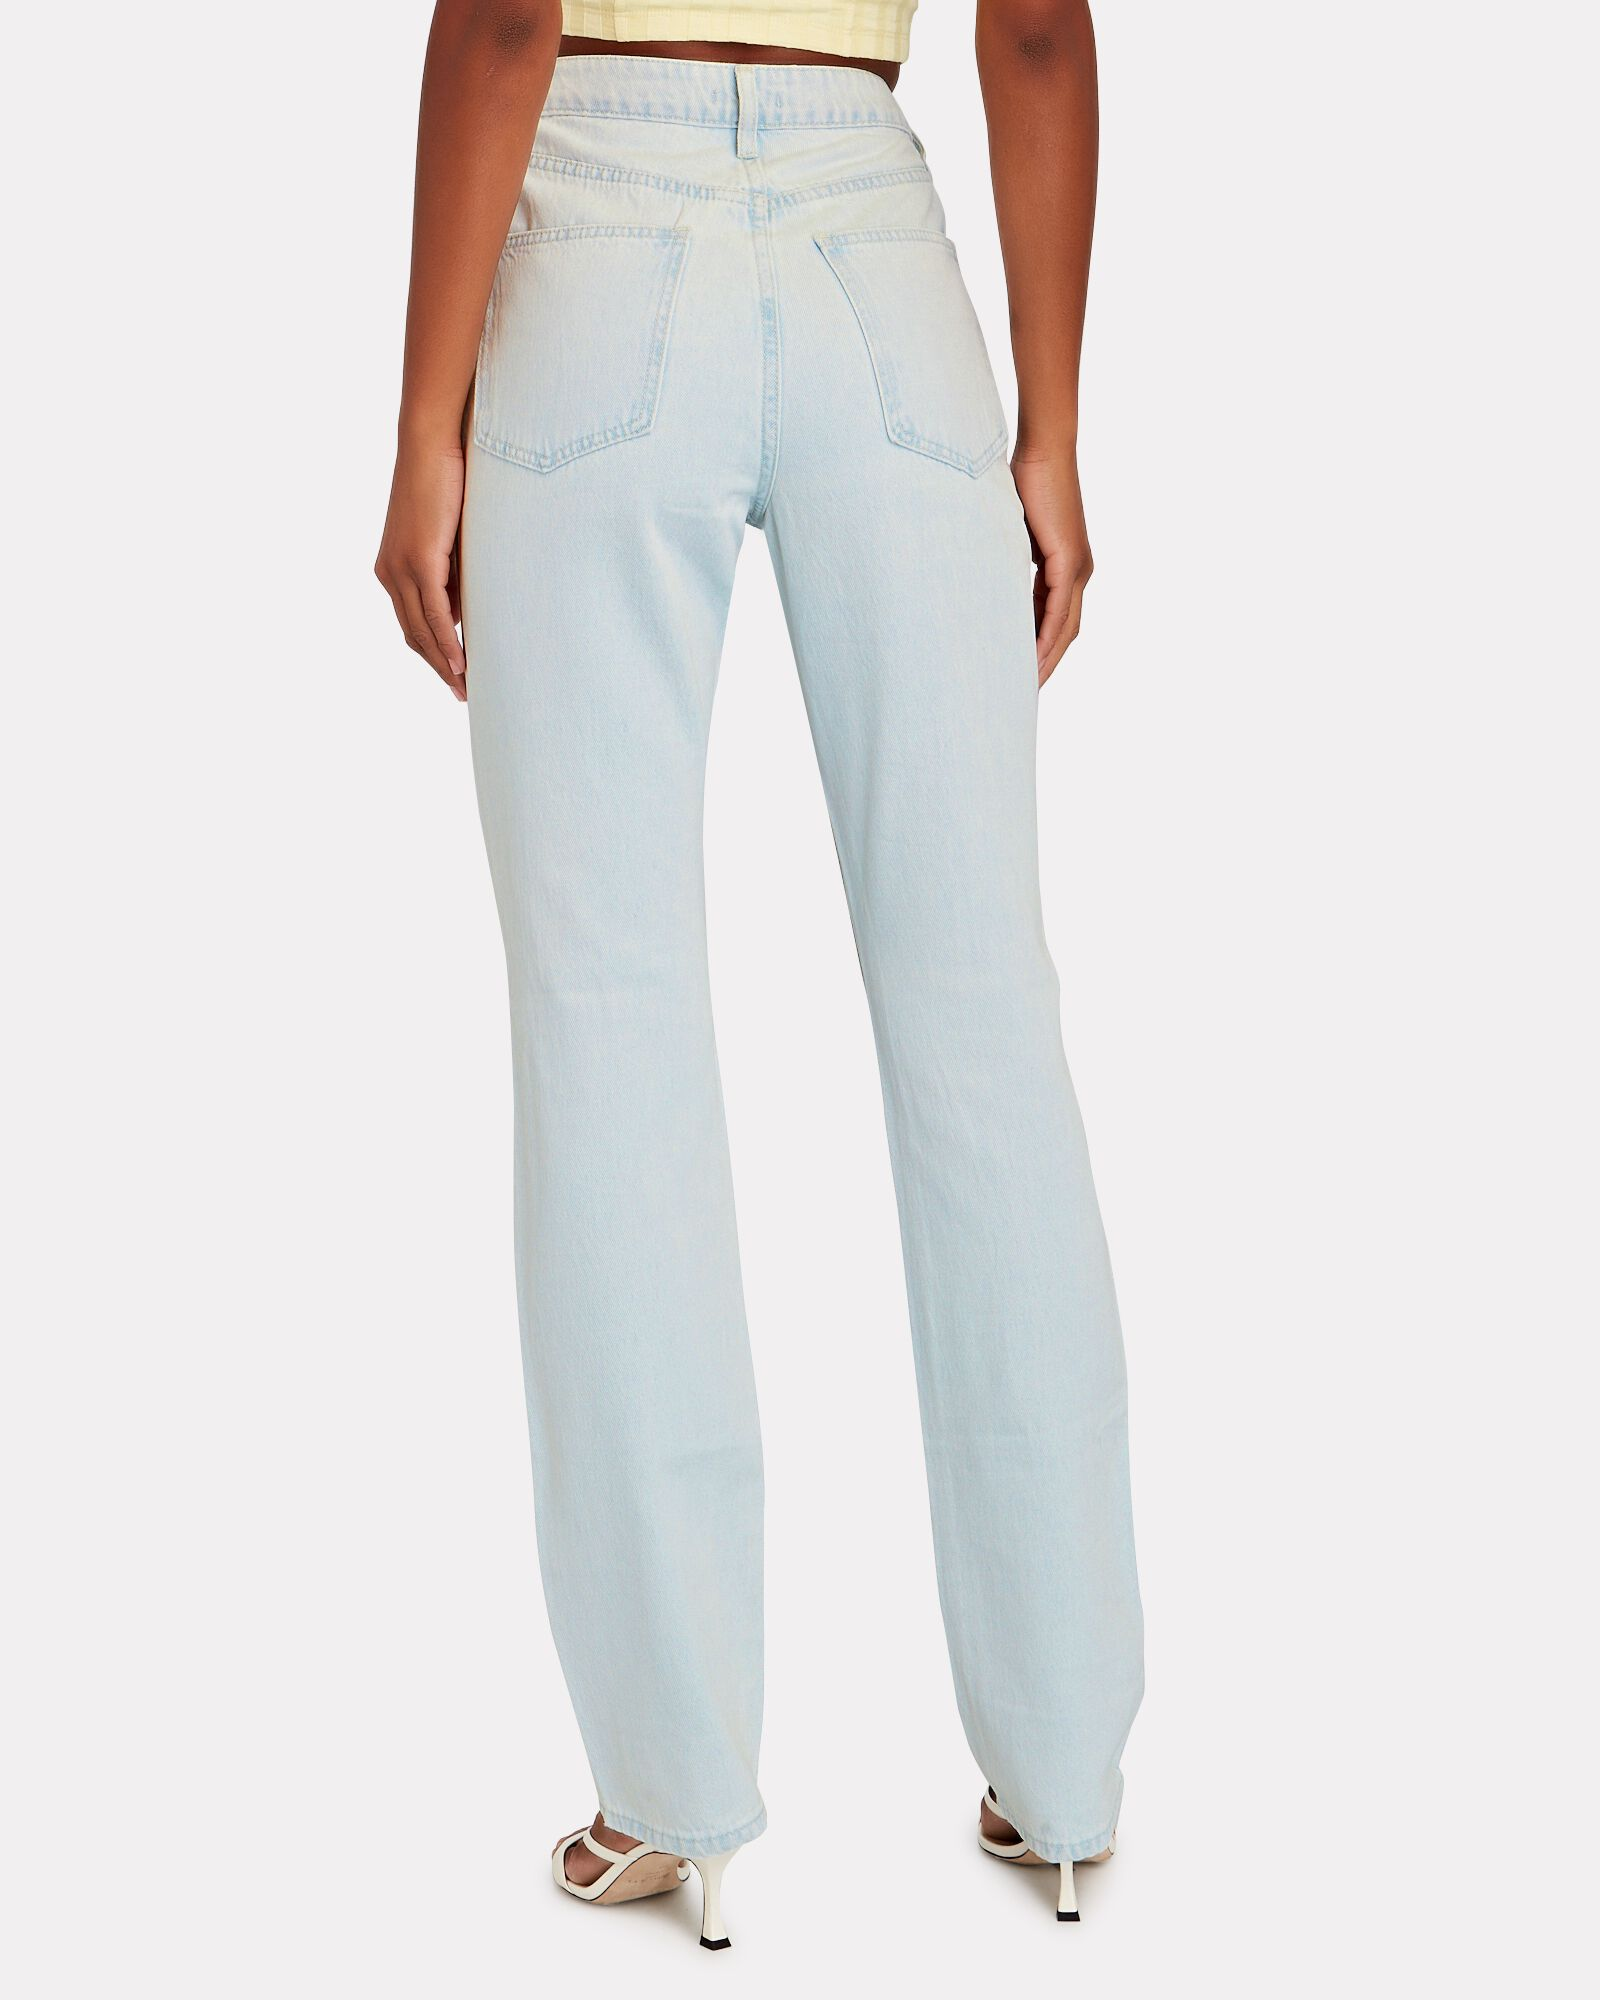 The Icon High-Rise Jeans, LIGHT ICY WASH, hi-res